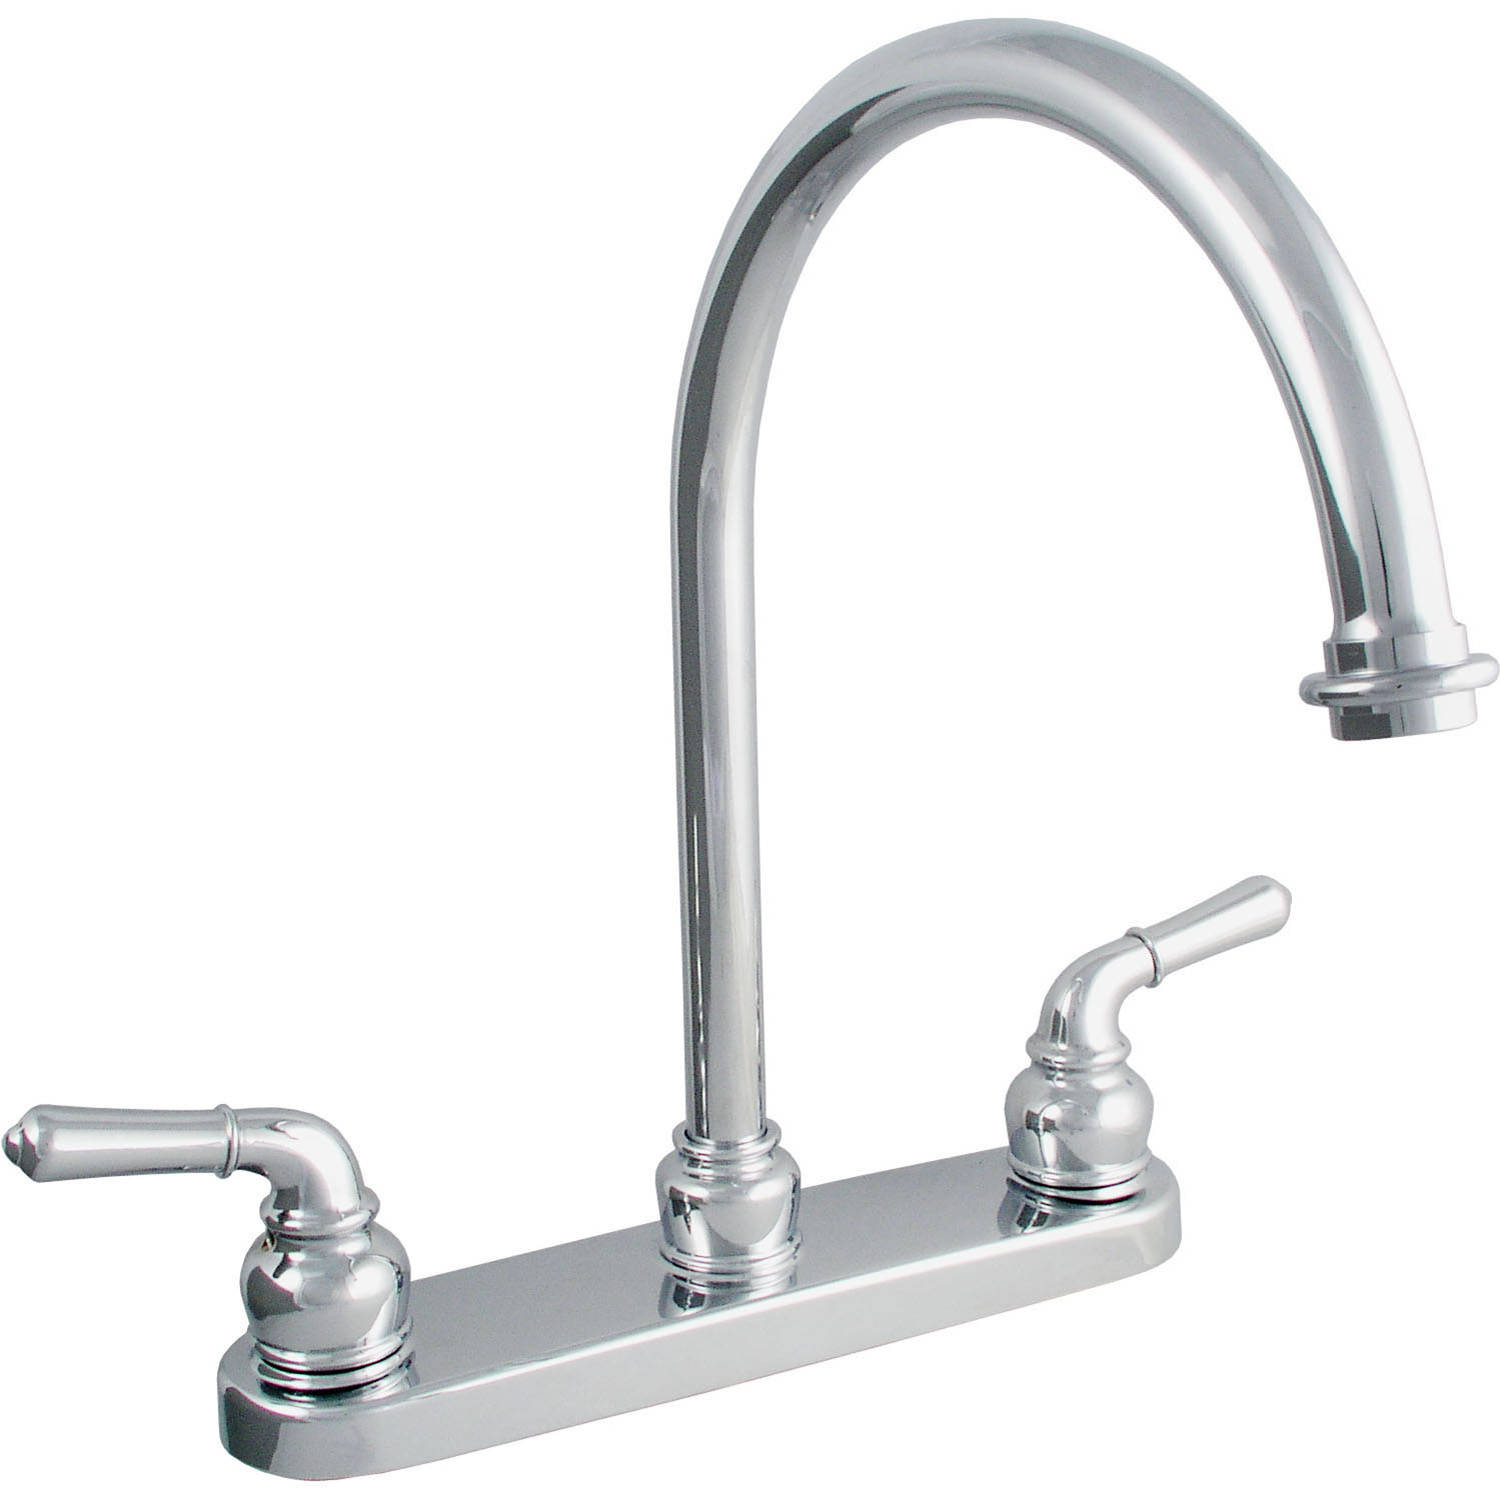 sc 1 st  Walmart & LDR 952-36415CP Double Handle Chrome Kitchen Faucet - Walmart.com